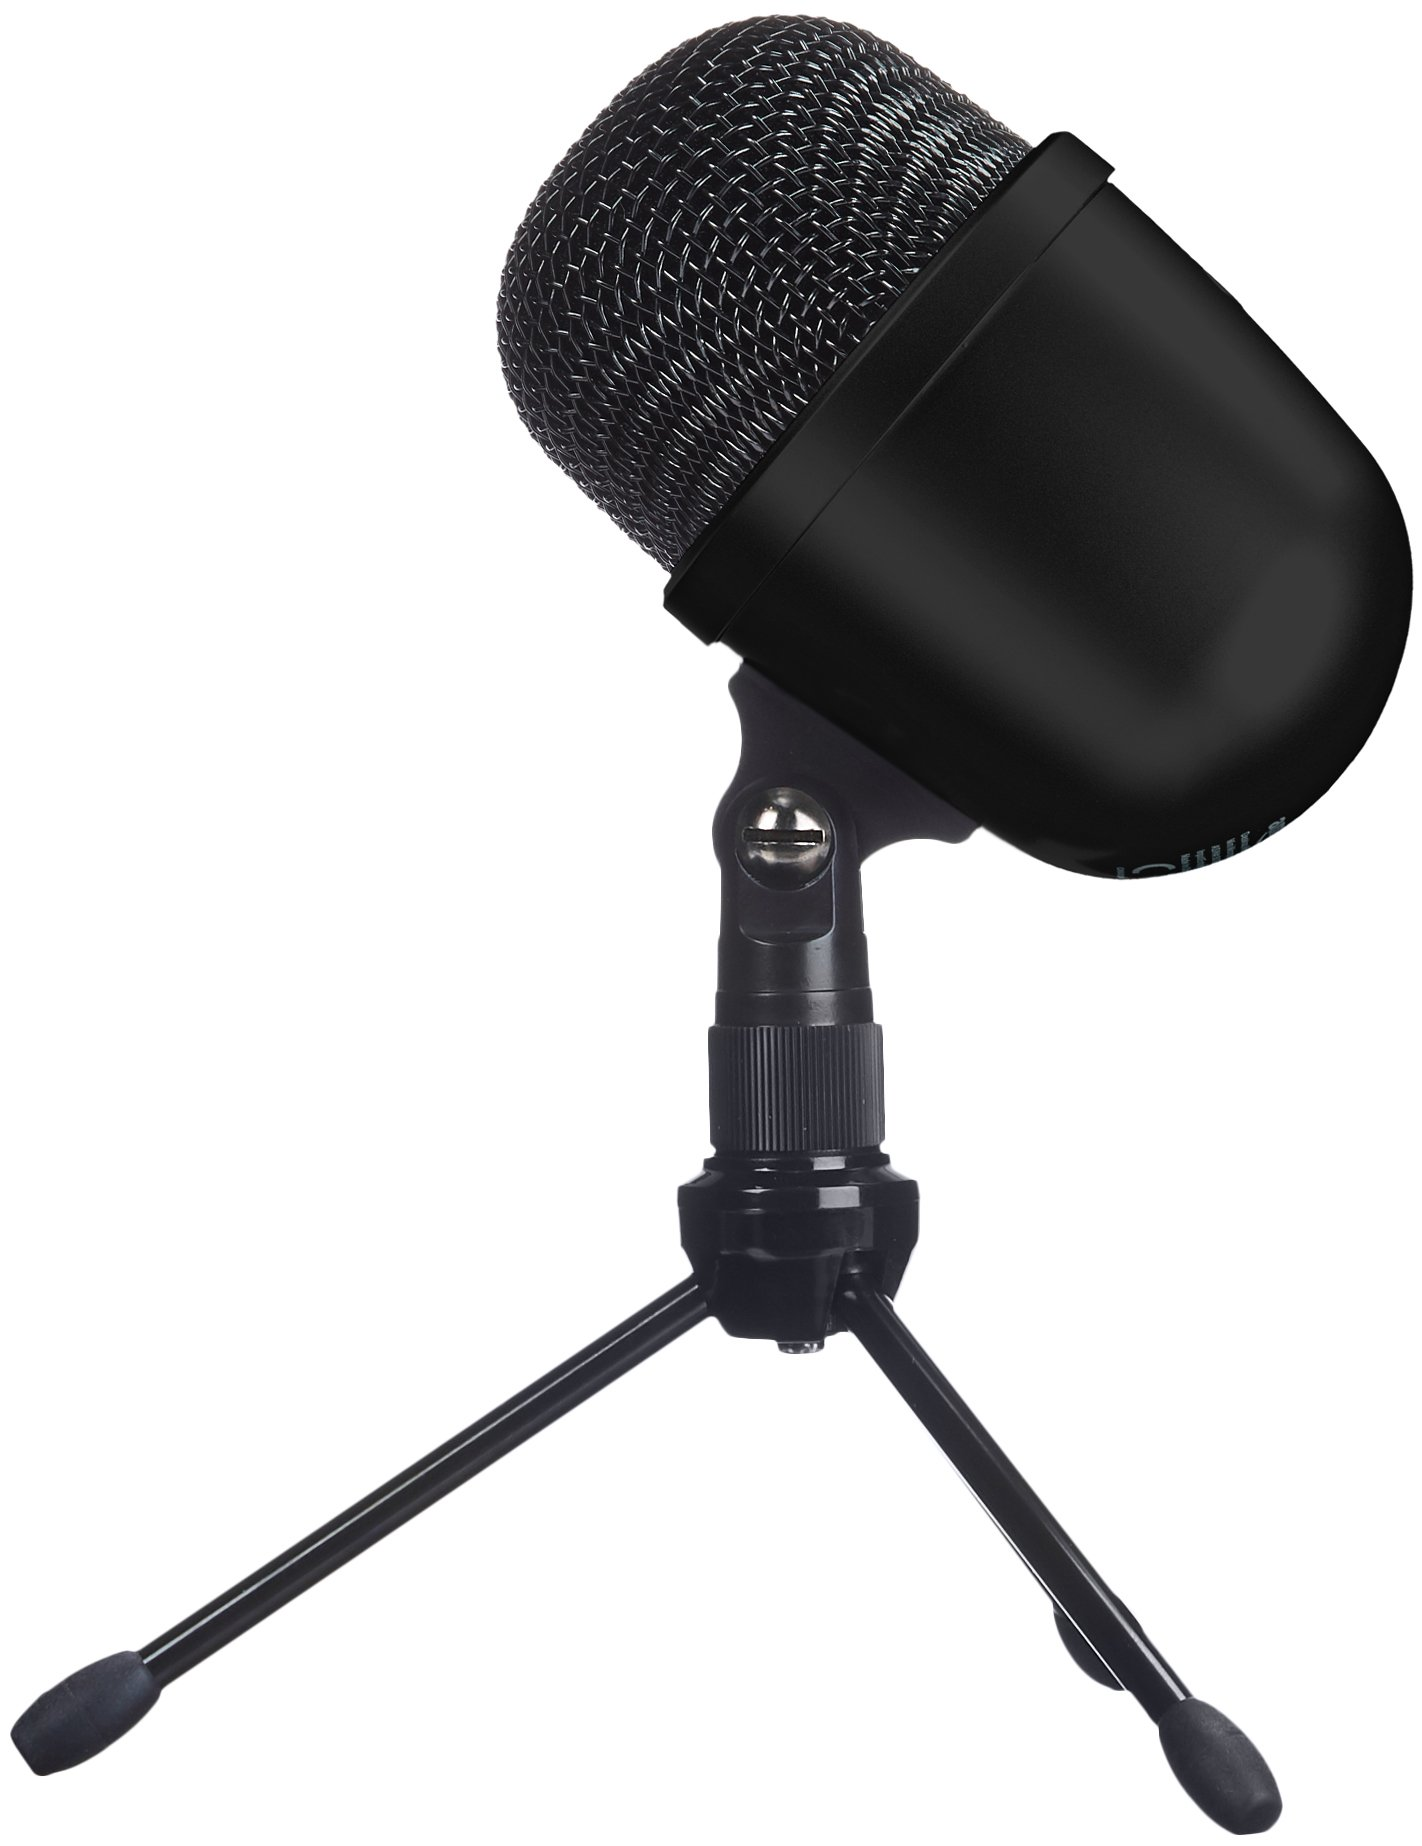 AmazonBasics Desktop Mini Condenser Microphone - Black by AmazonBasics